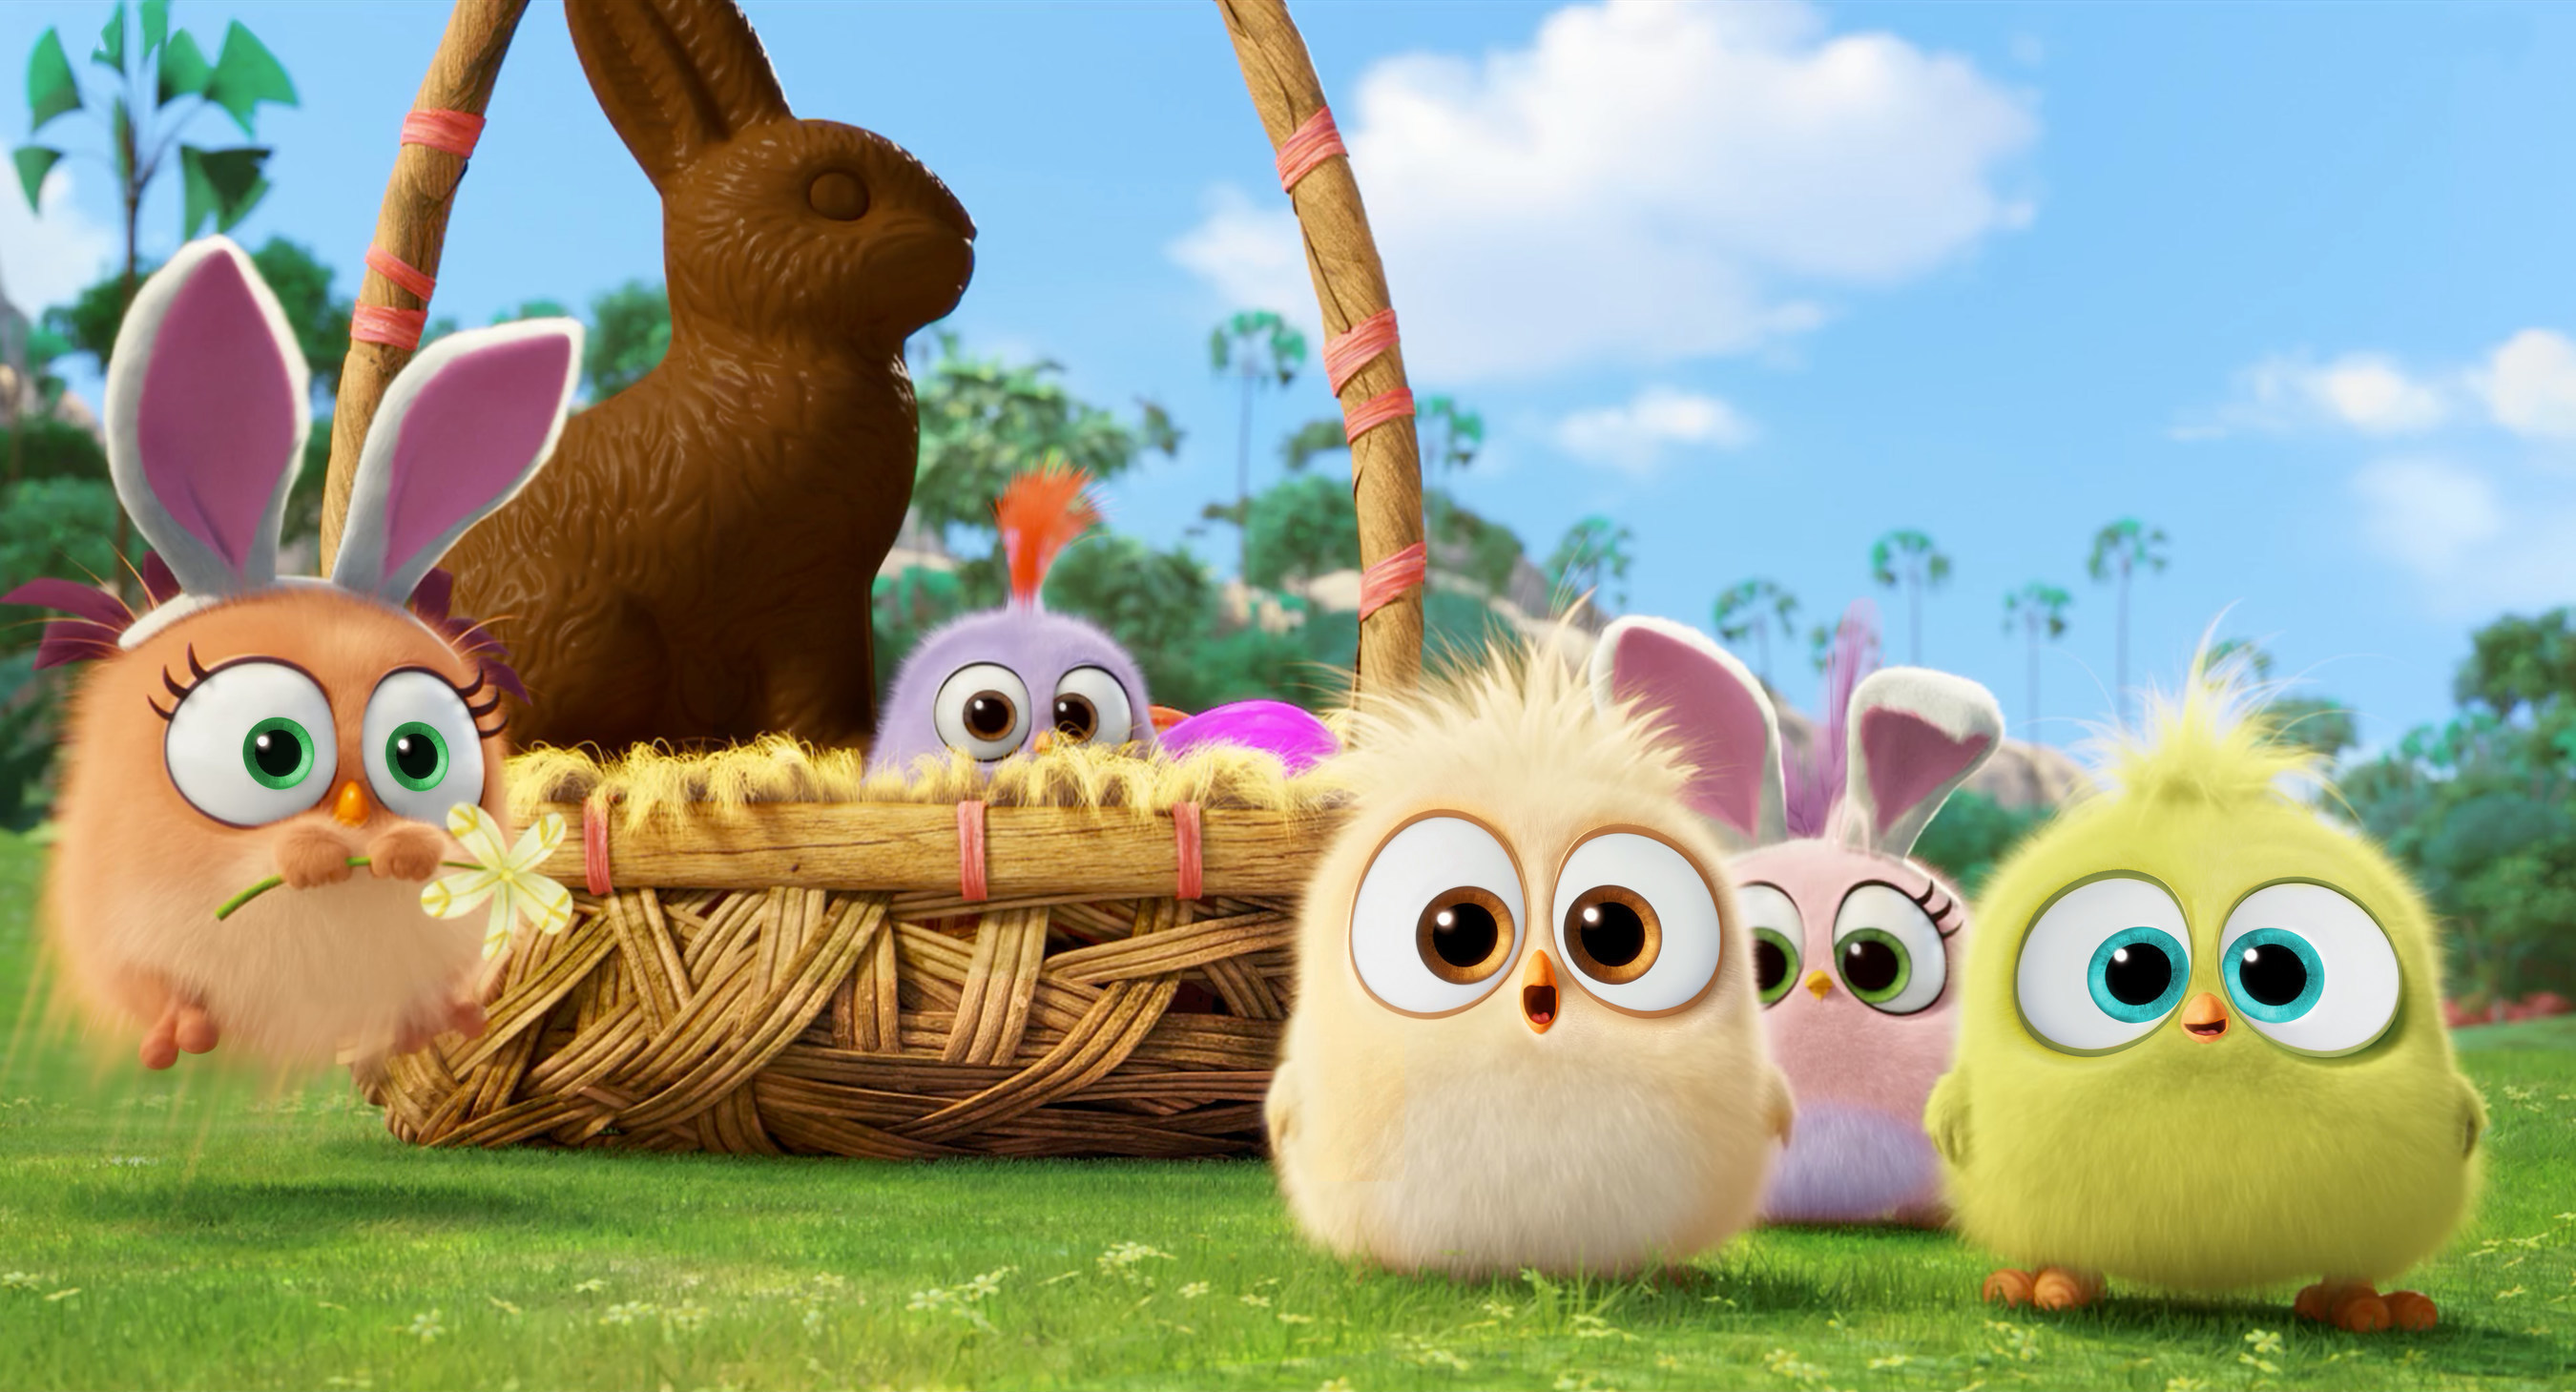 The Angry Birds Movie's Hatchlings Back in Theaters